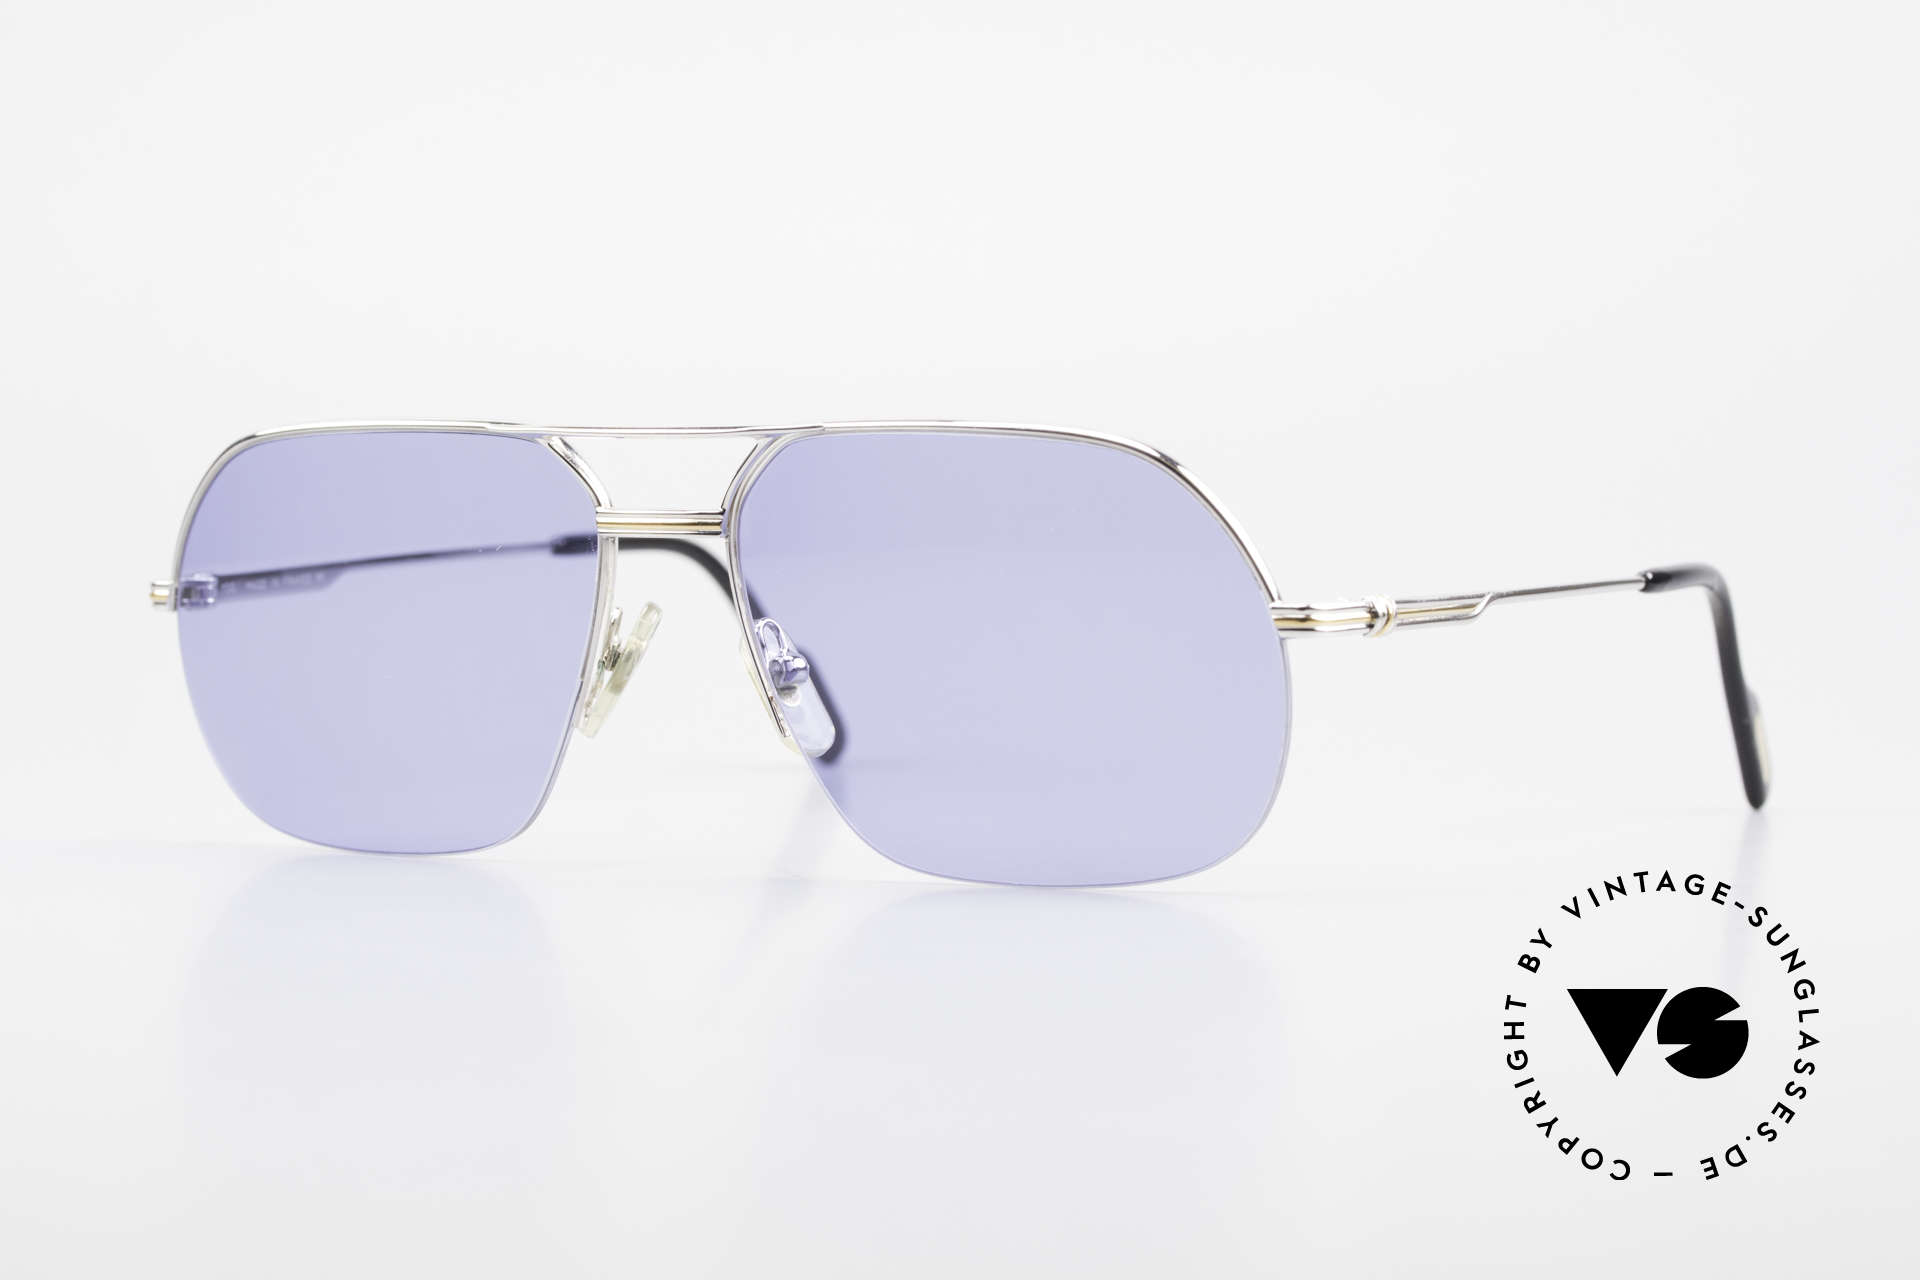 Cartier Orsay Luxury Vintage Sunglasses, striking Cartier vintage sunglasses; size 58°15, 130, Made for Men